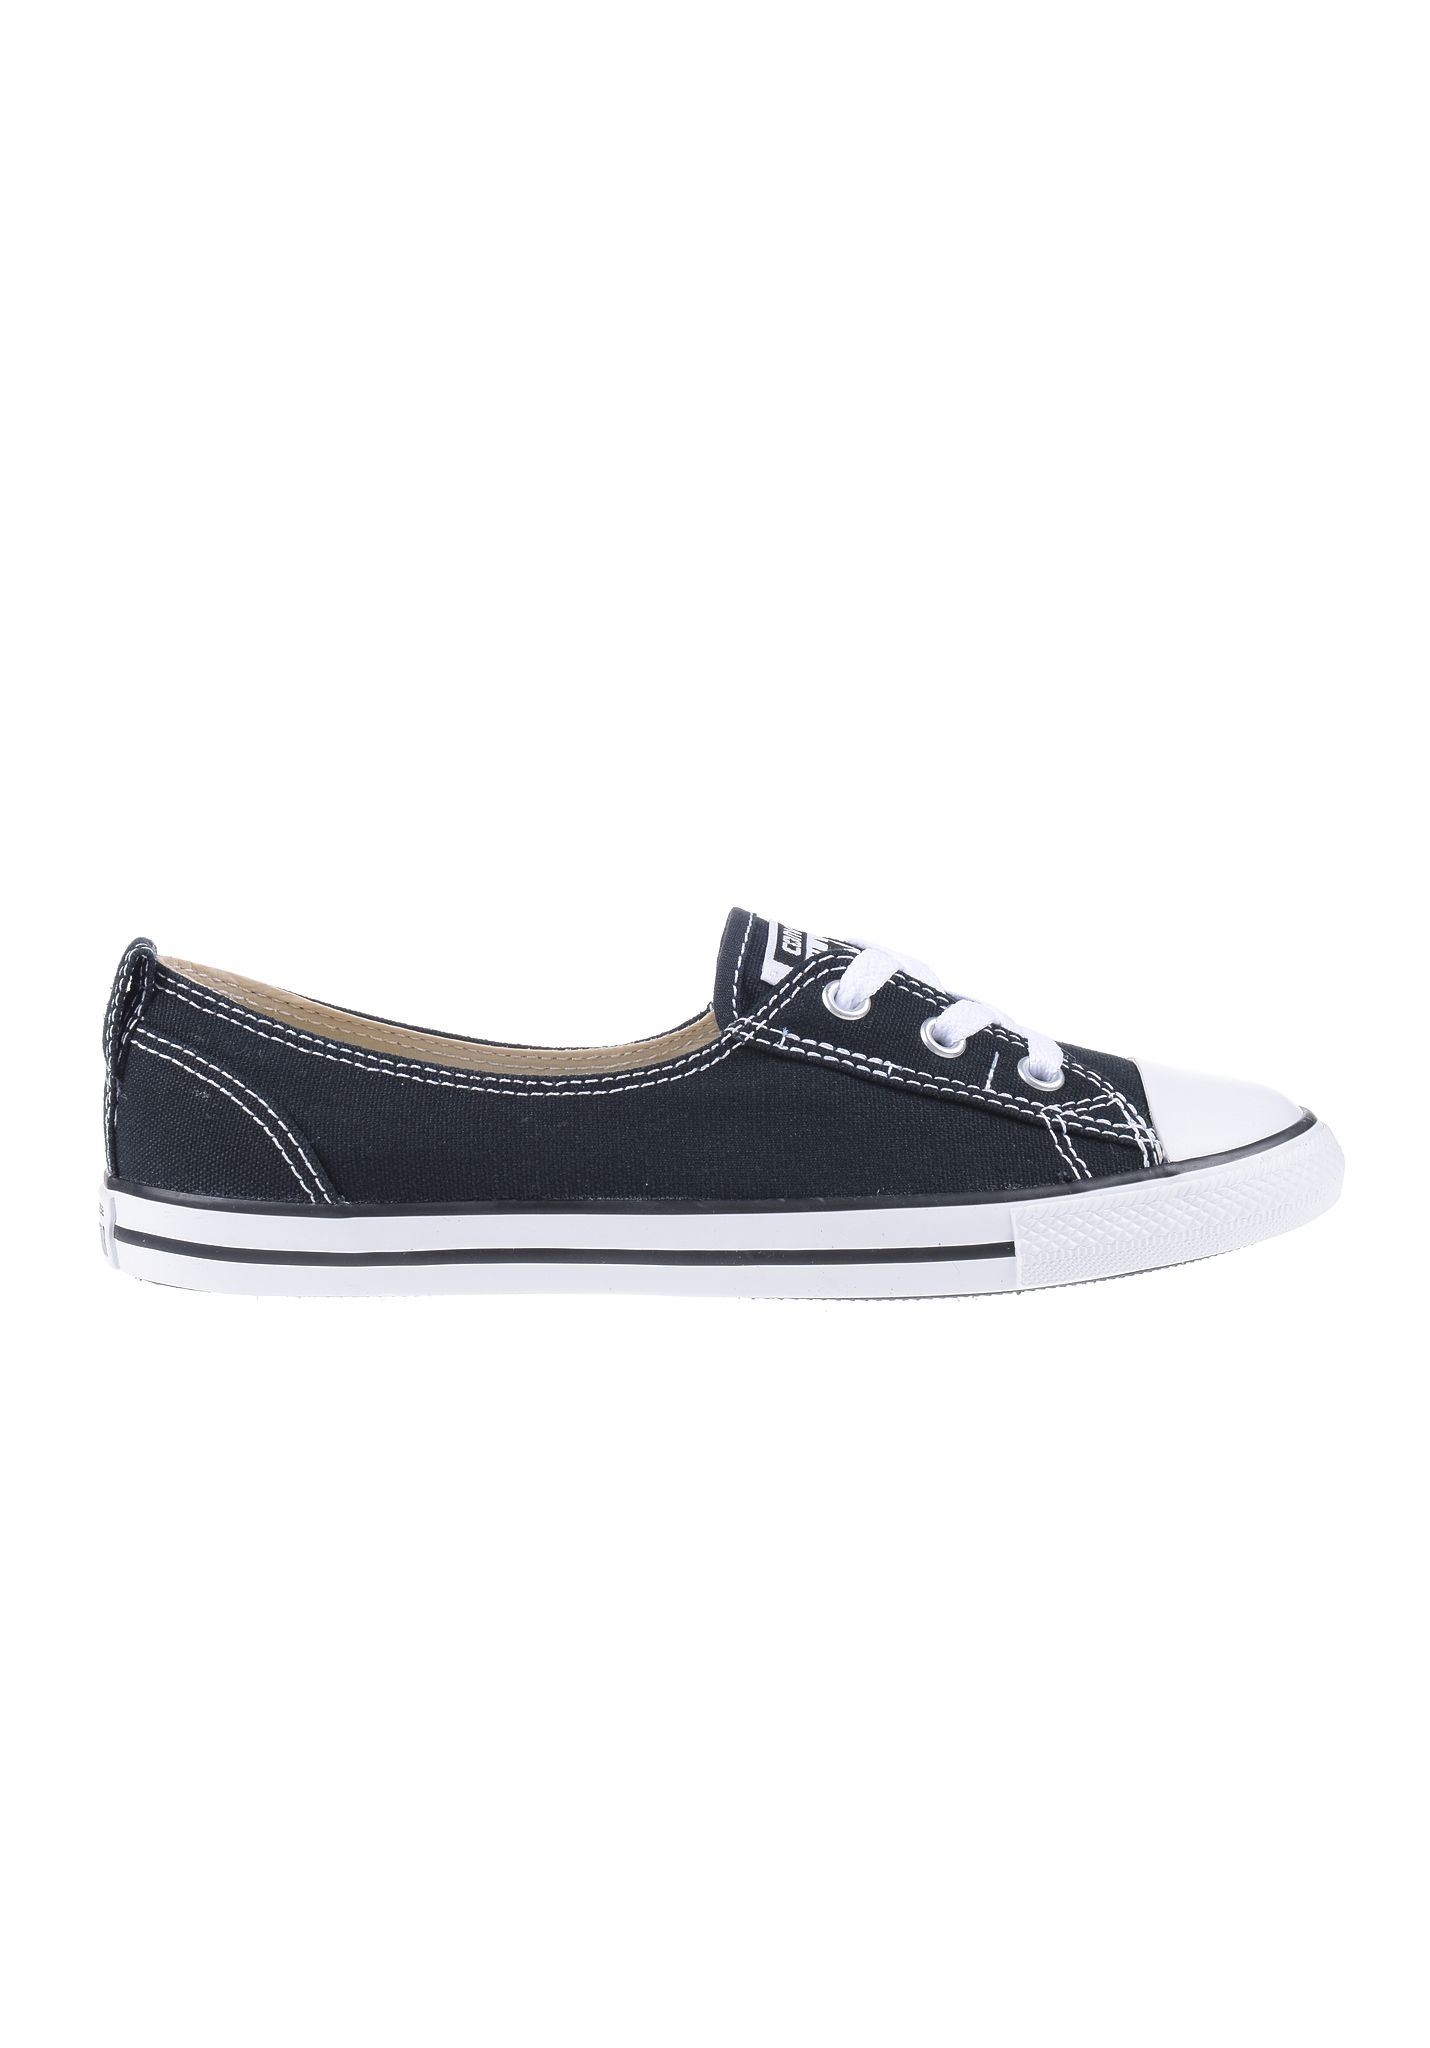 5e82568b9ee1a8 Converse Chuck Taylor All Star Ballet Lace - Sneakers for Women - Black -  Planet Sports